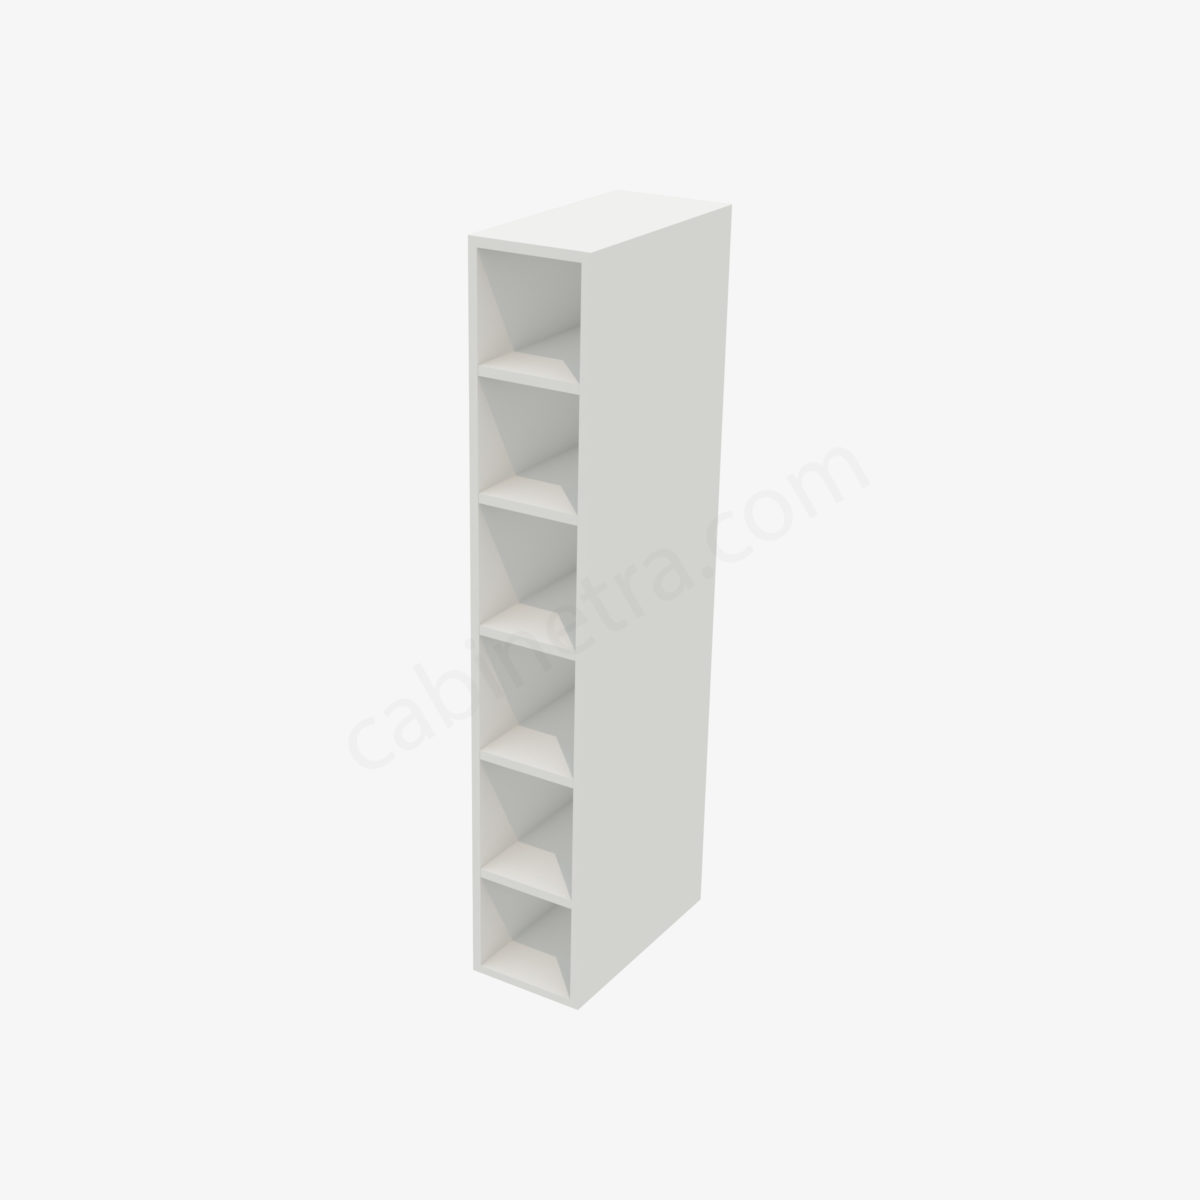 AW WC636 5 Forevermark Ice White Shaker Cabinetra scaled